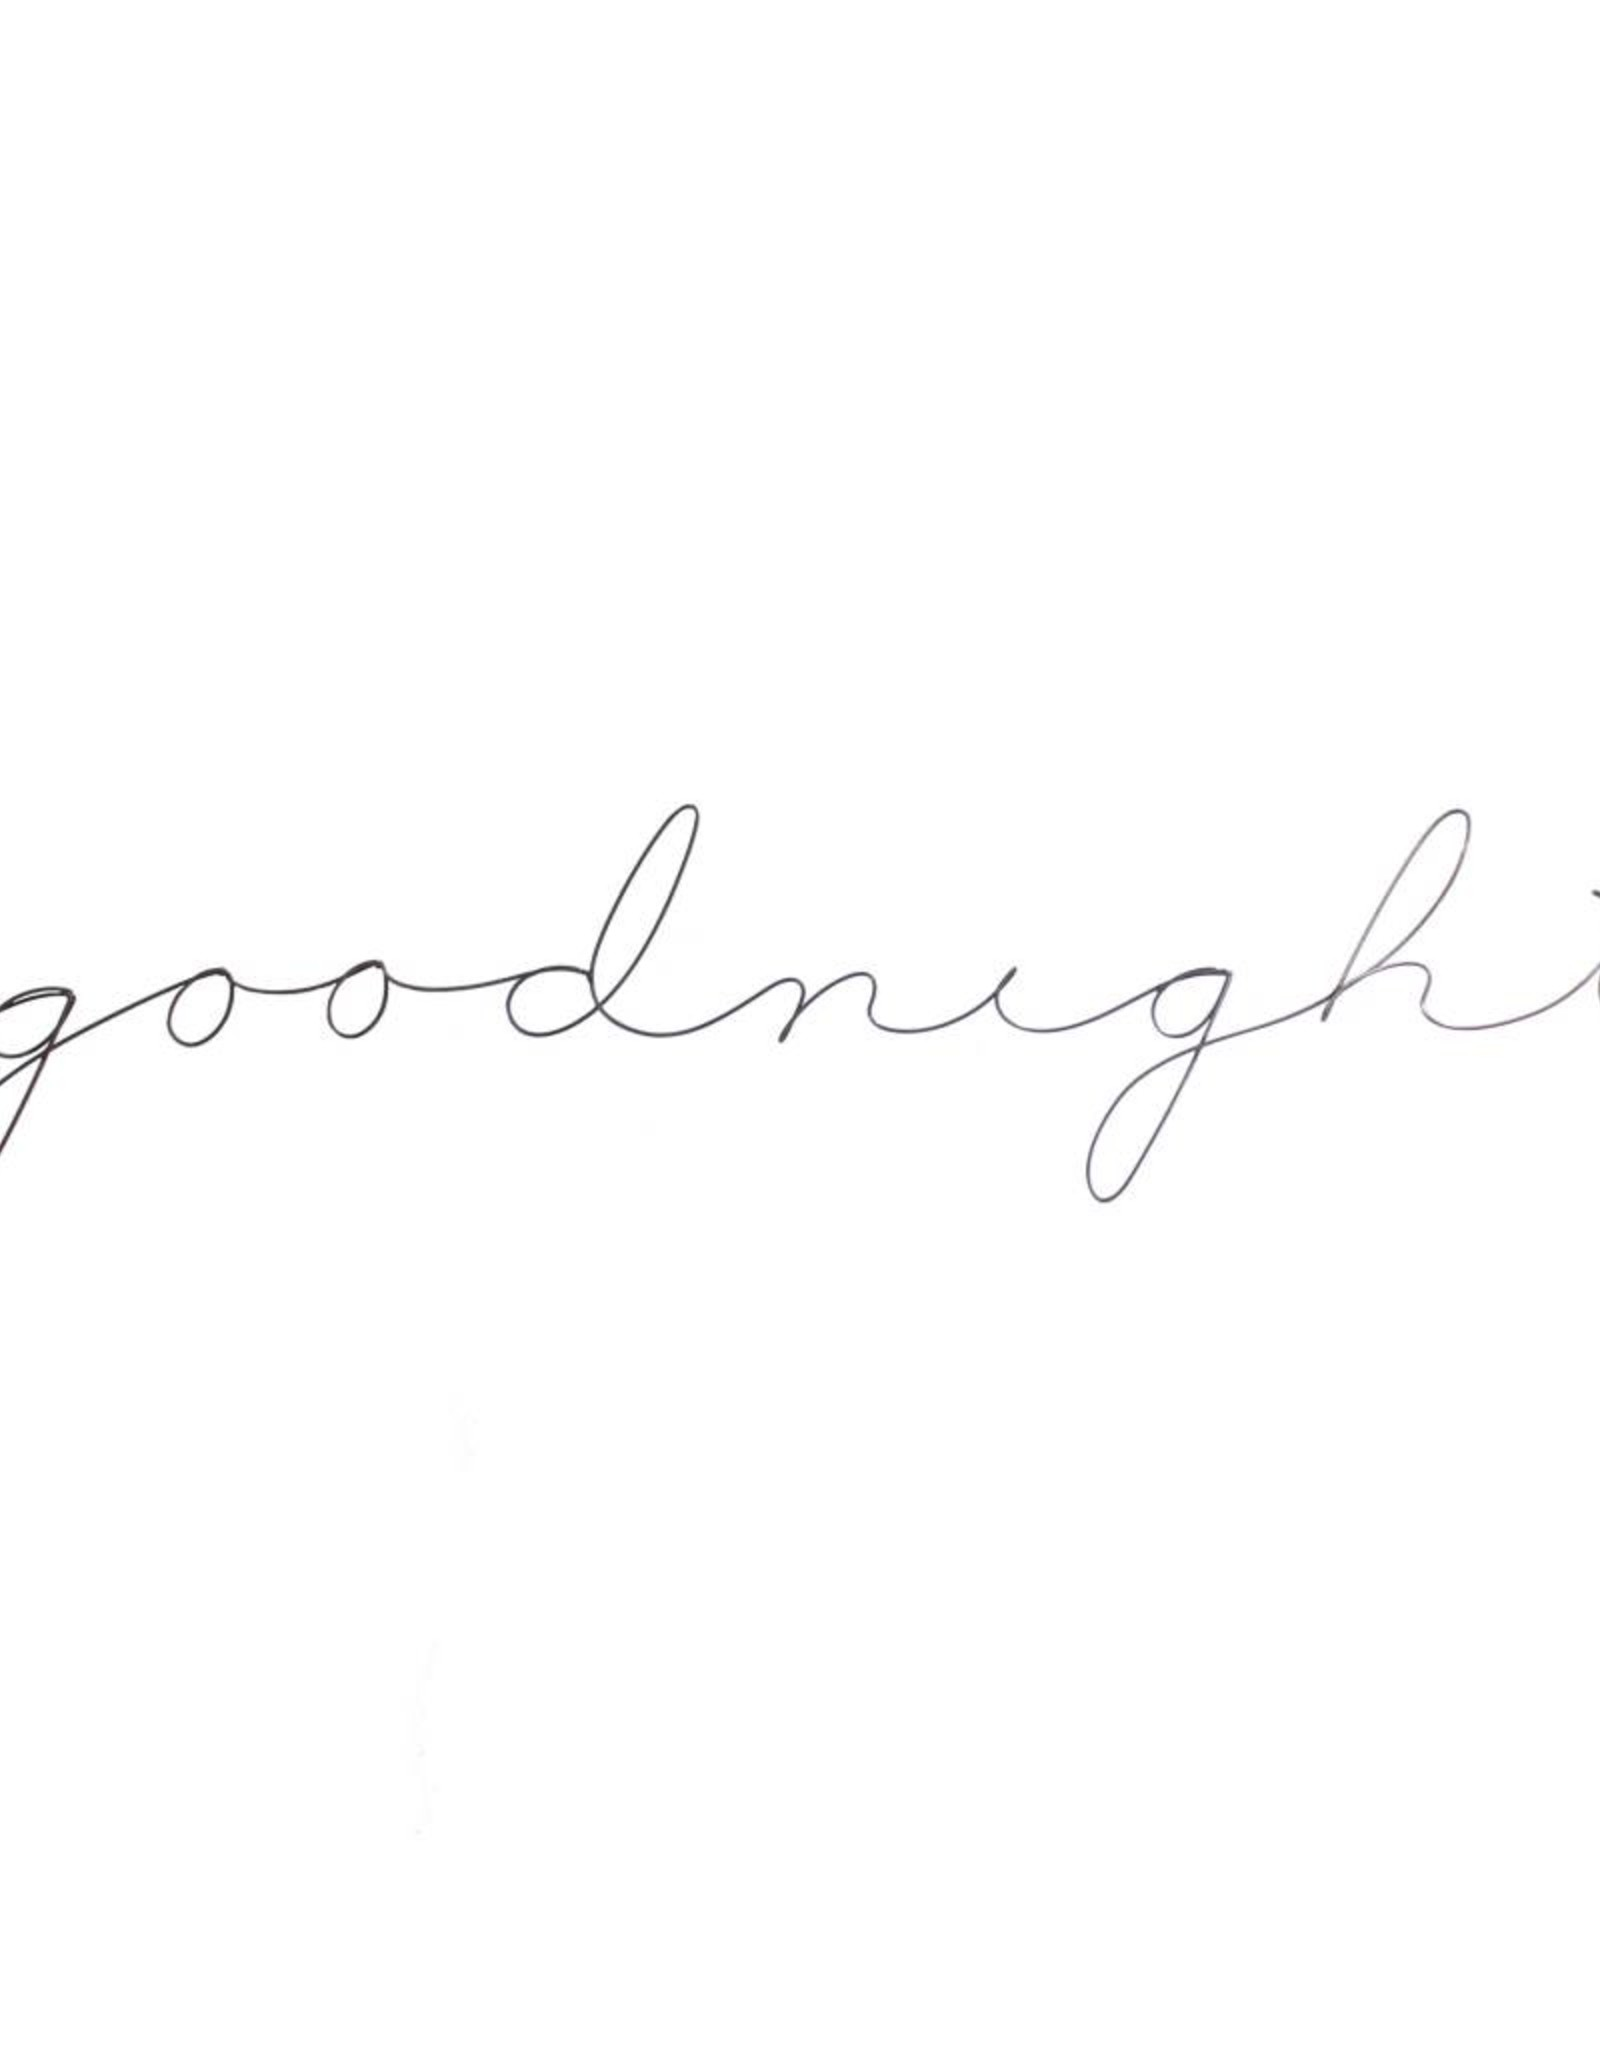 Gauge NYC 'goodnight' Wire Word Poetic